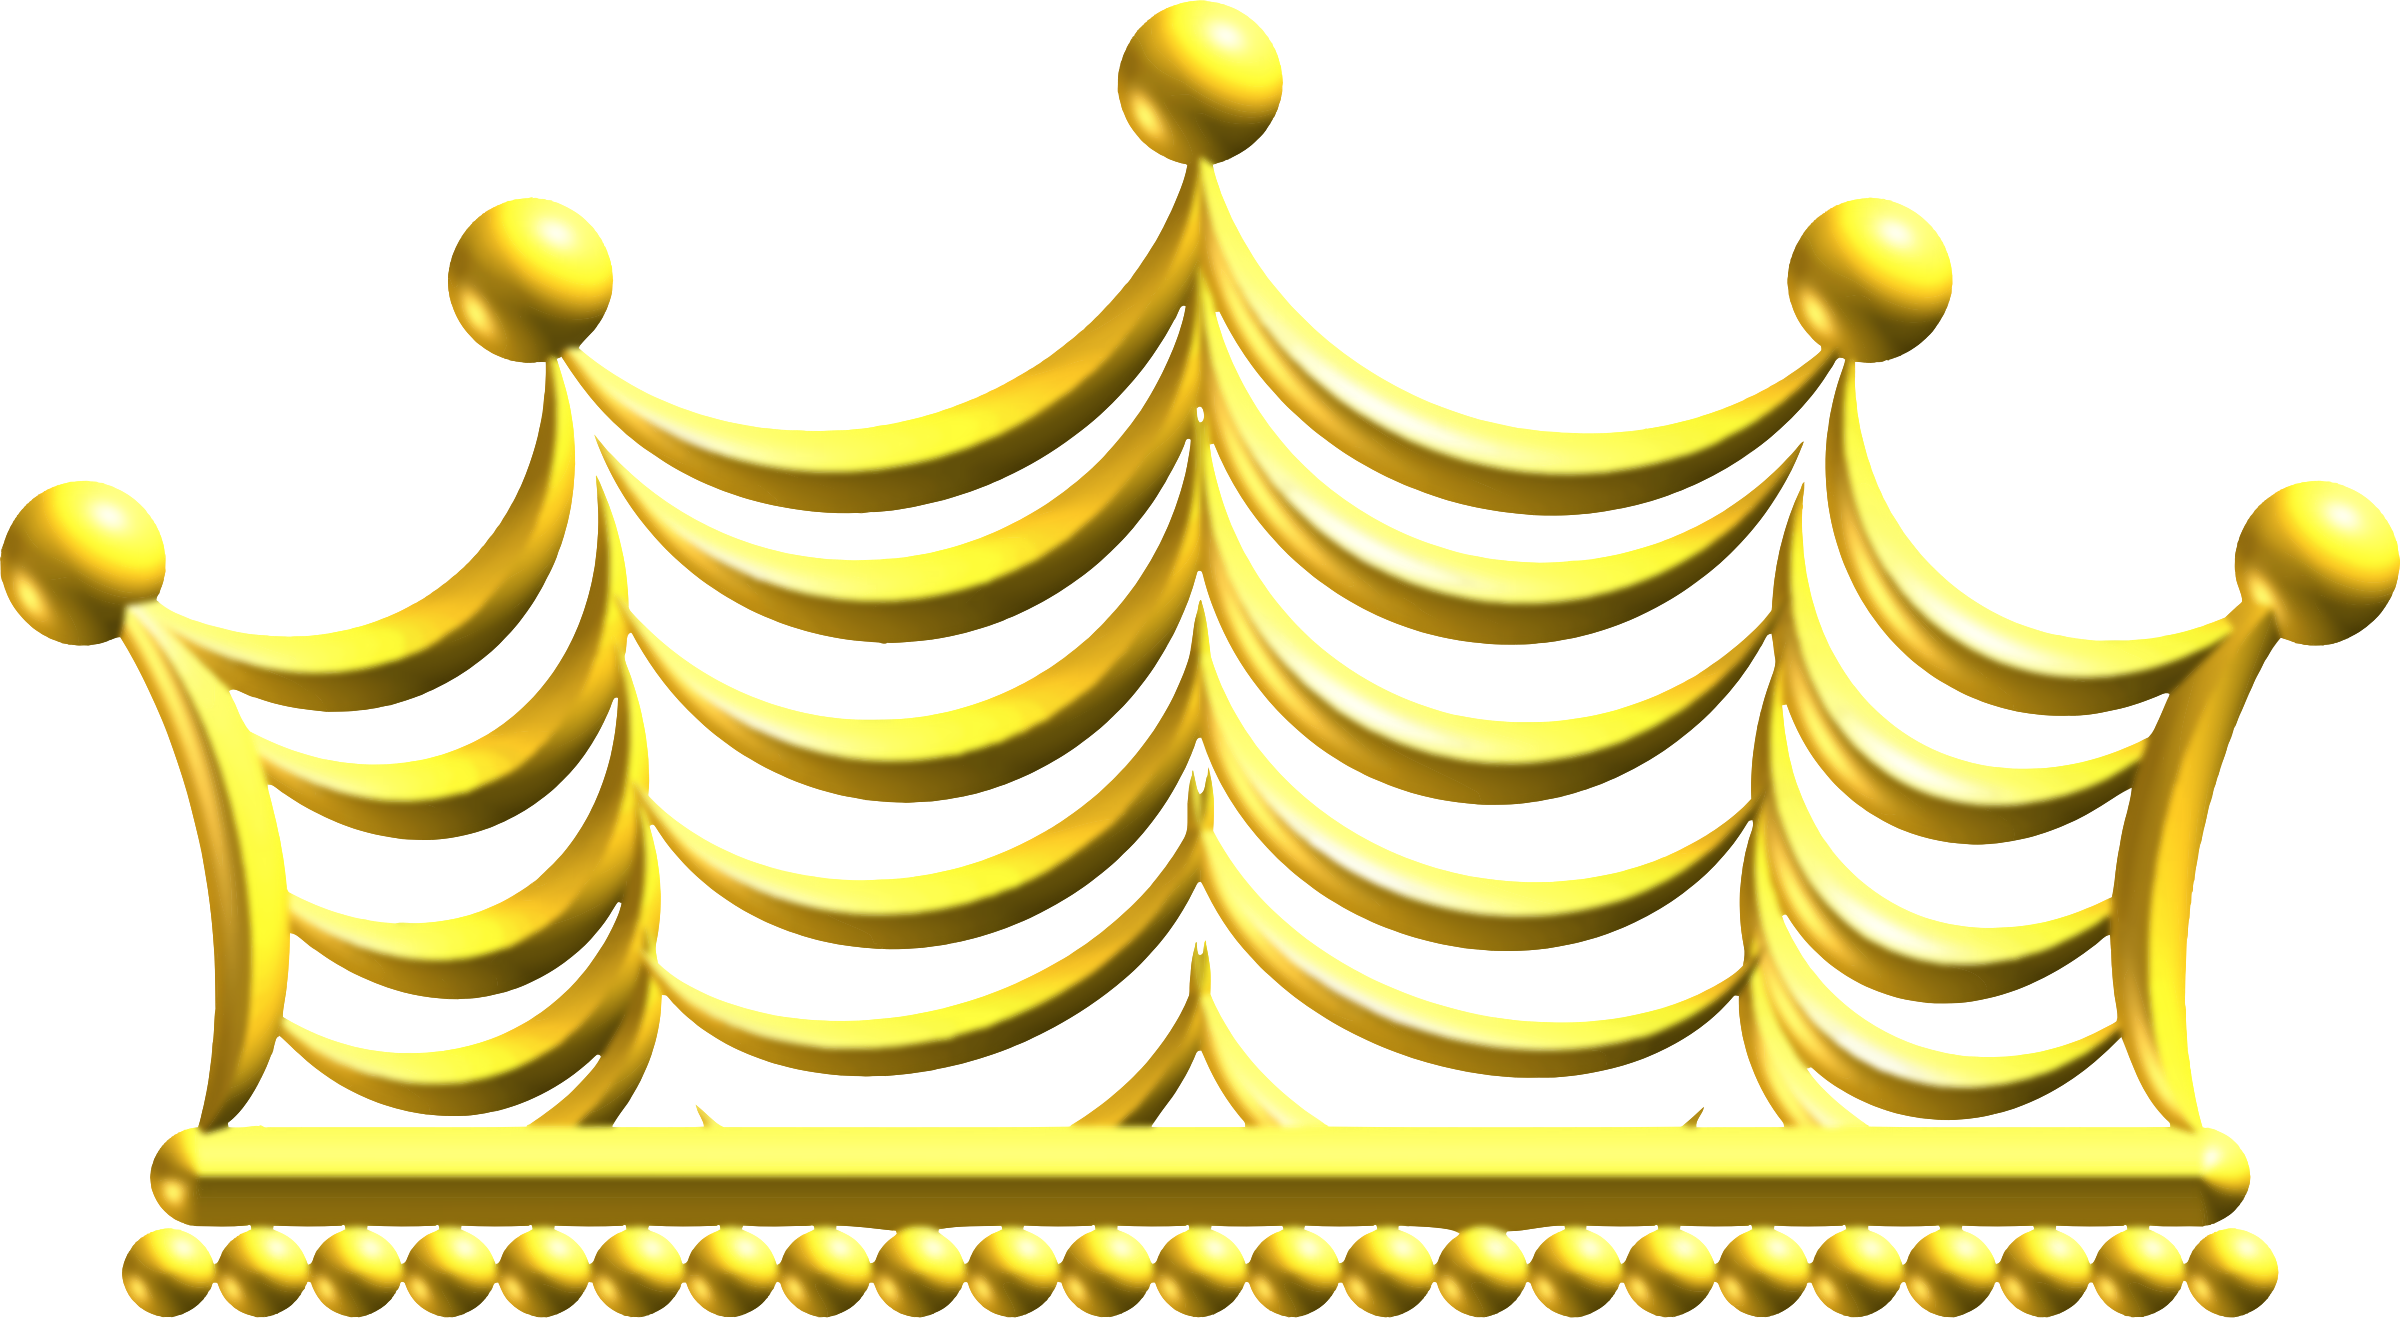 Gold crown 4 by Firkin